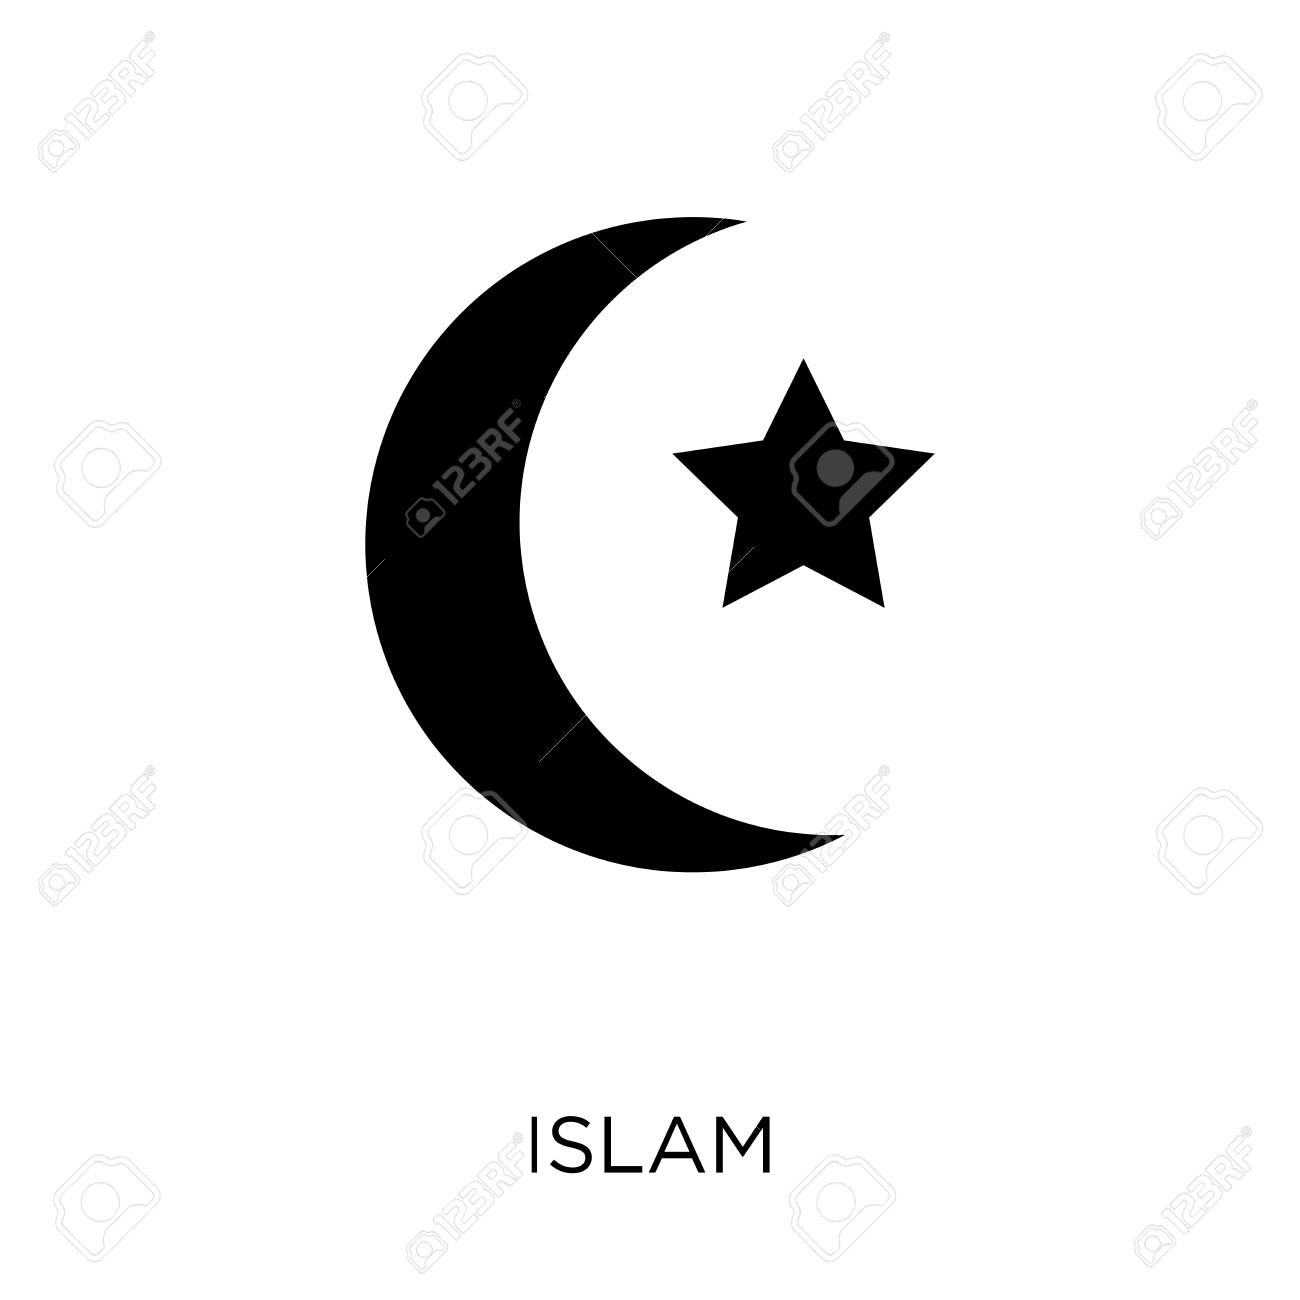 islam icon islam symbol design from religion collection simple royalty free cliparts vectors and stock illustration image 111535794 islam icon islam symbol design from religion collection simple